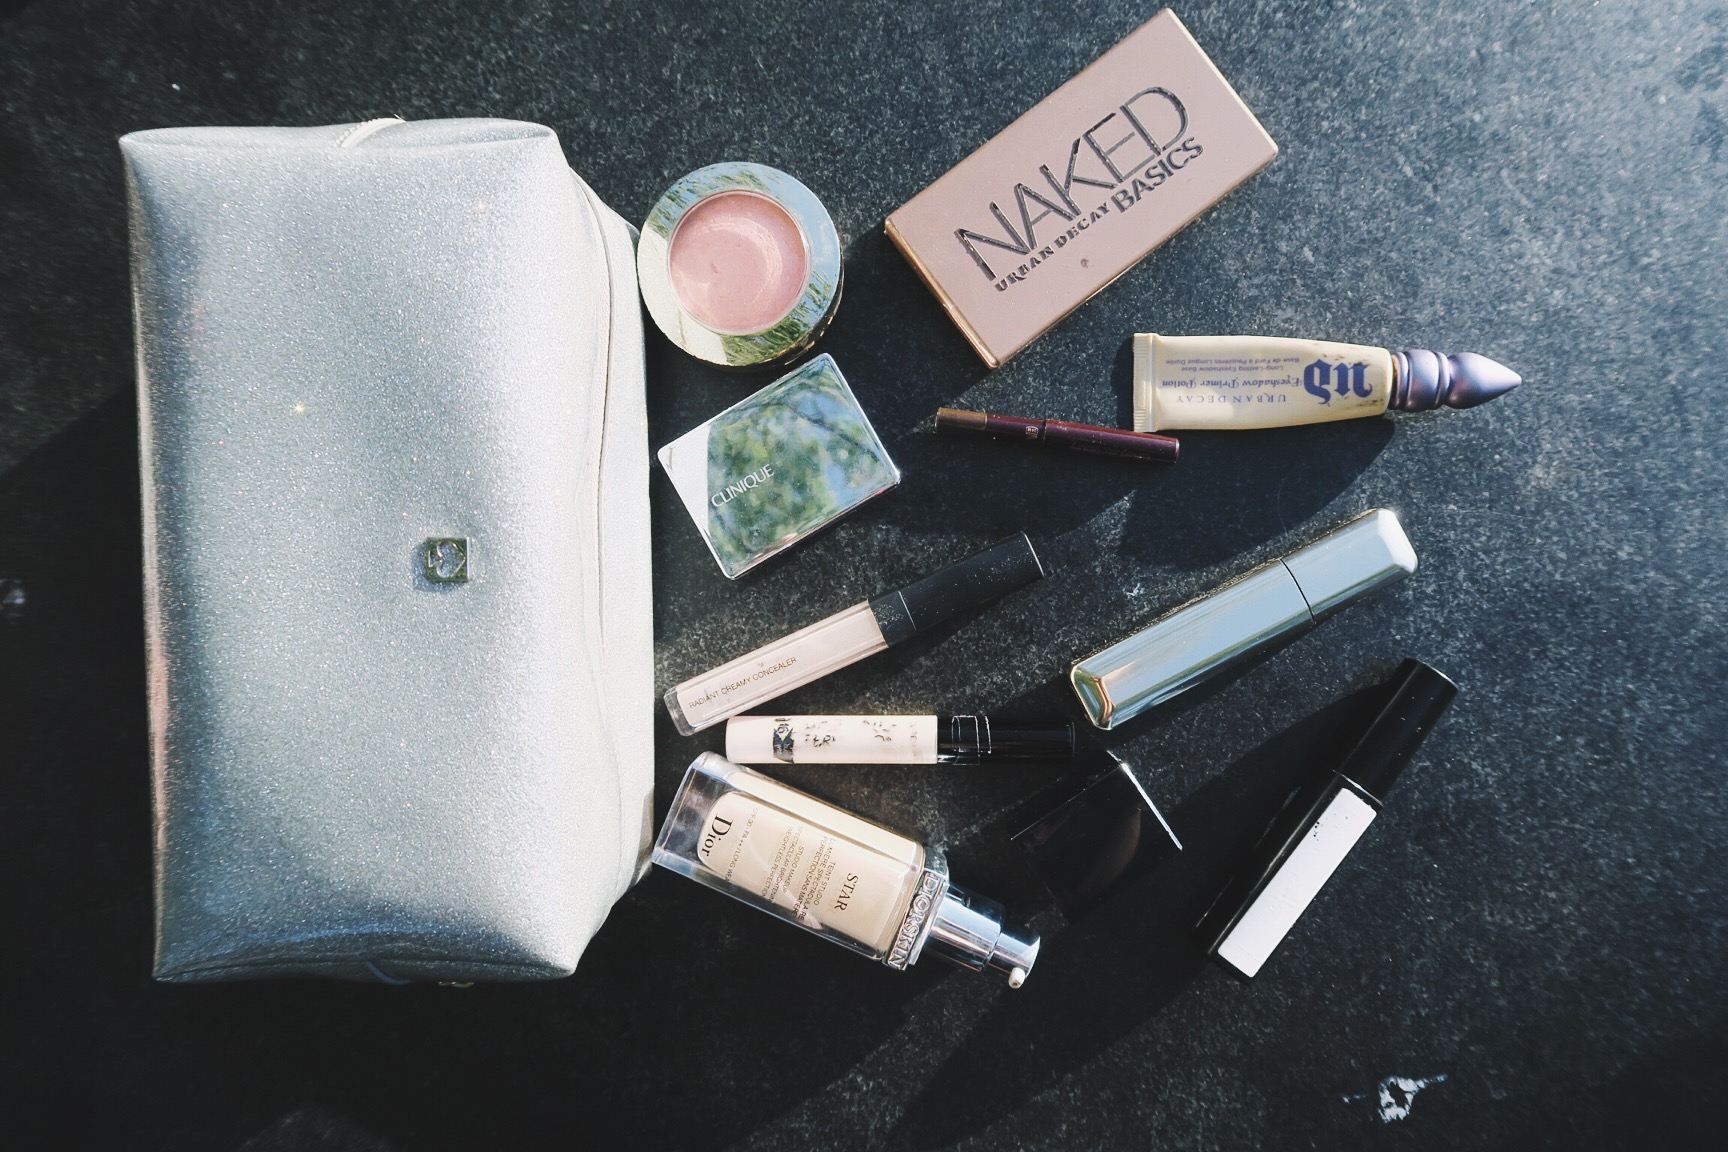 The contents of Anna's travel makeup bag